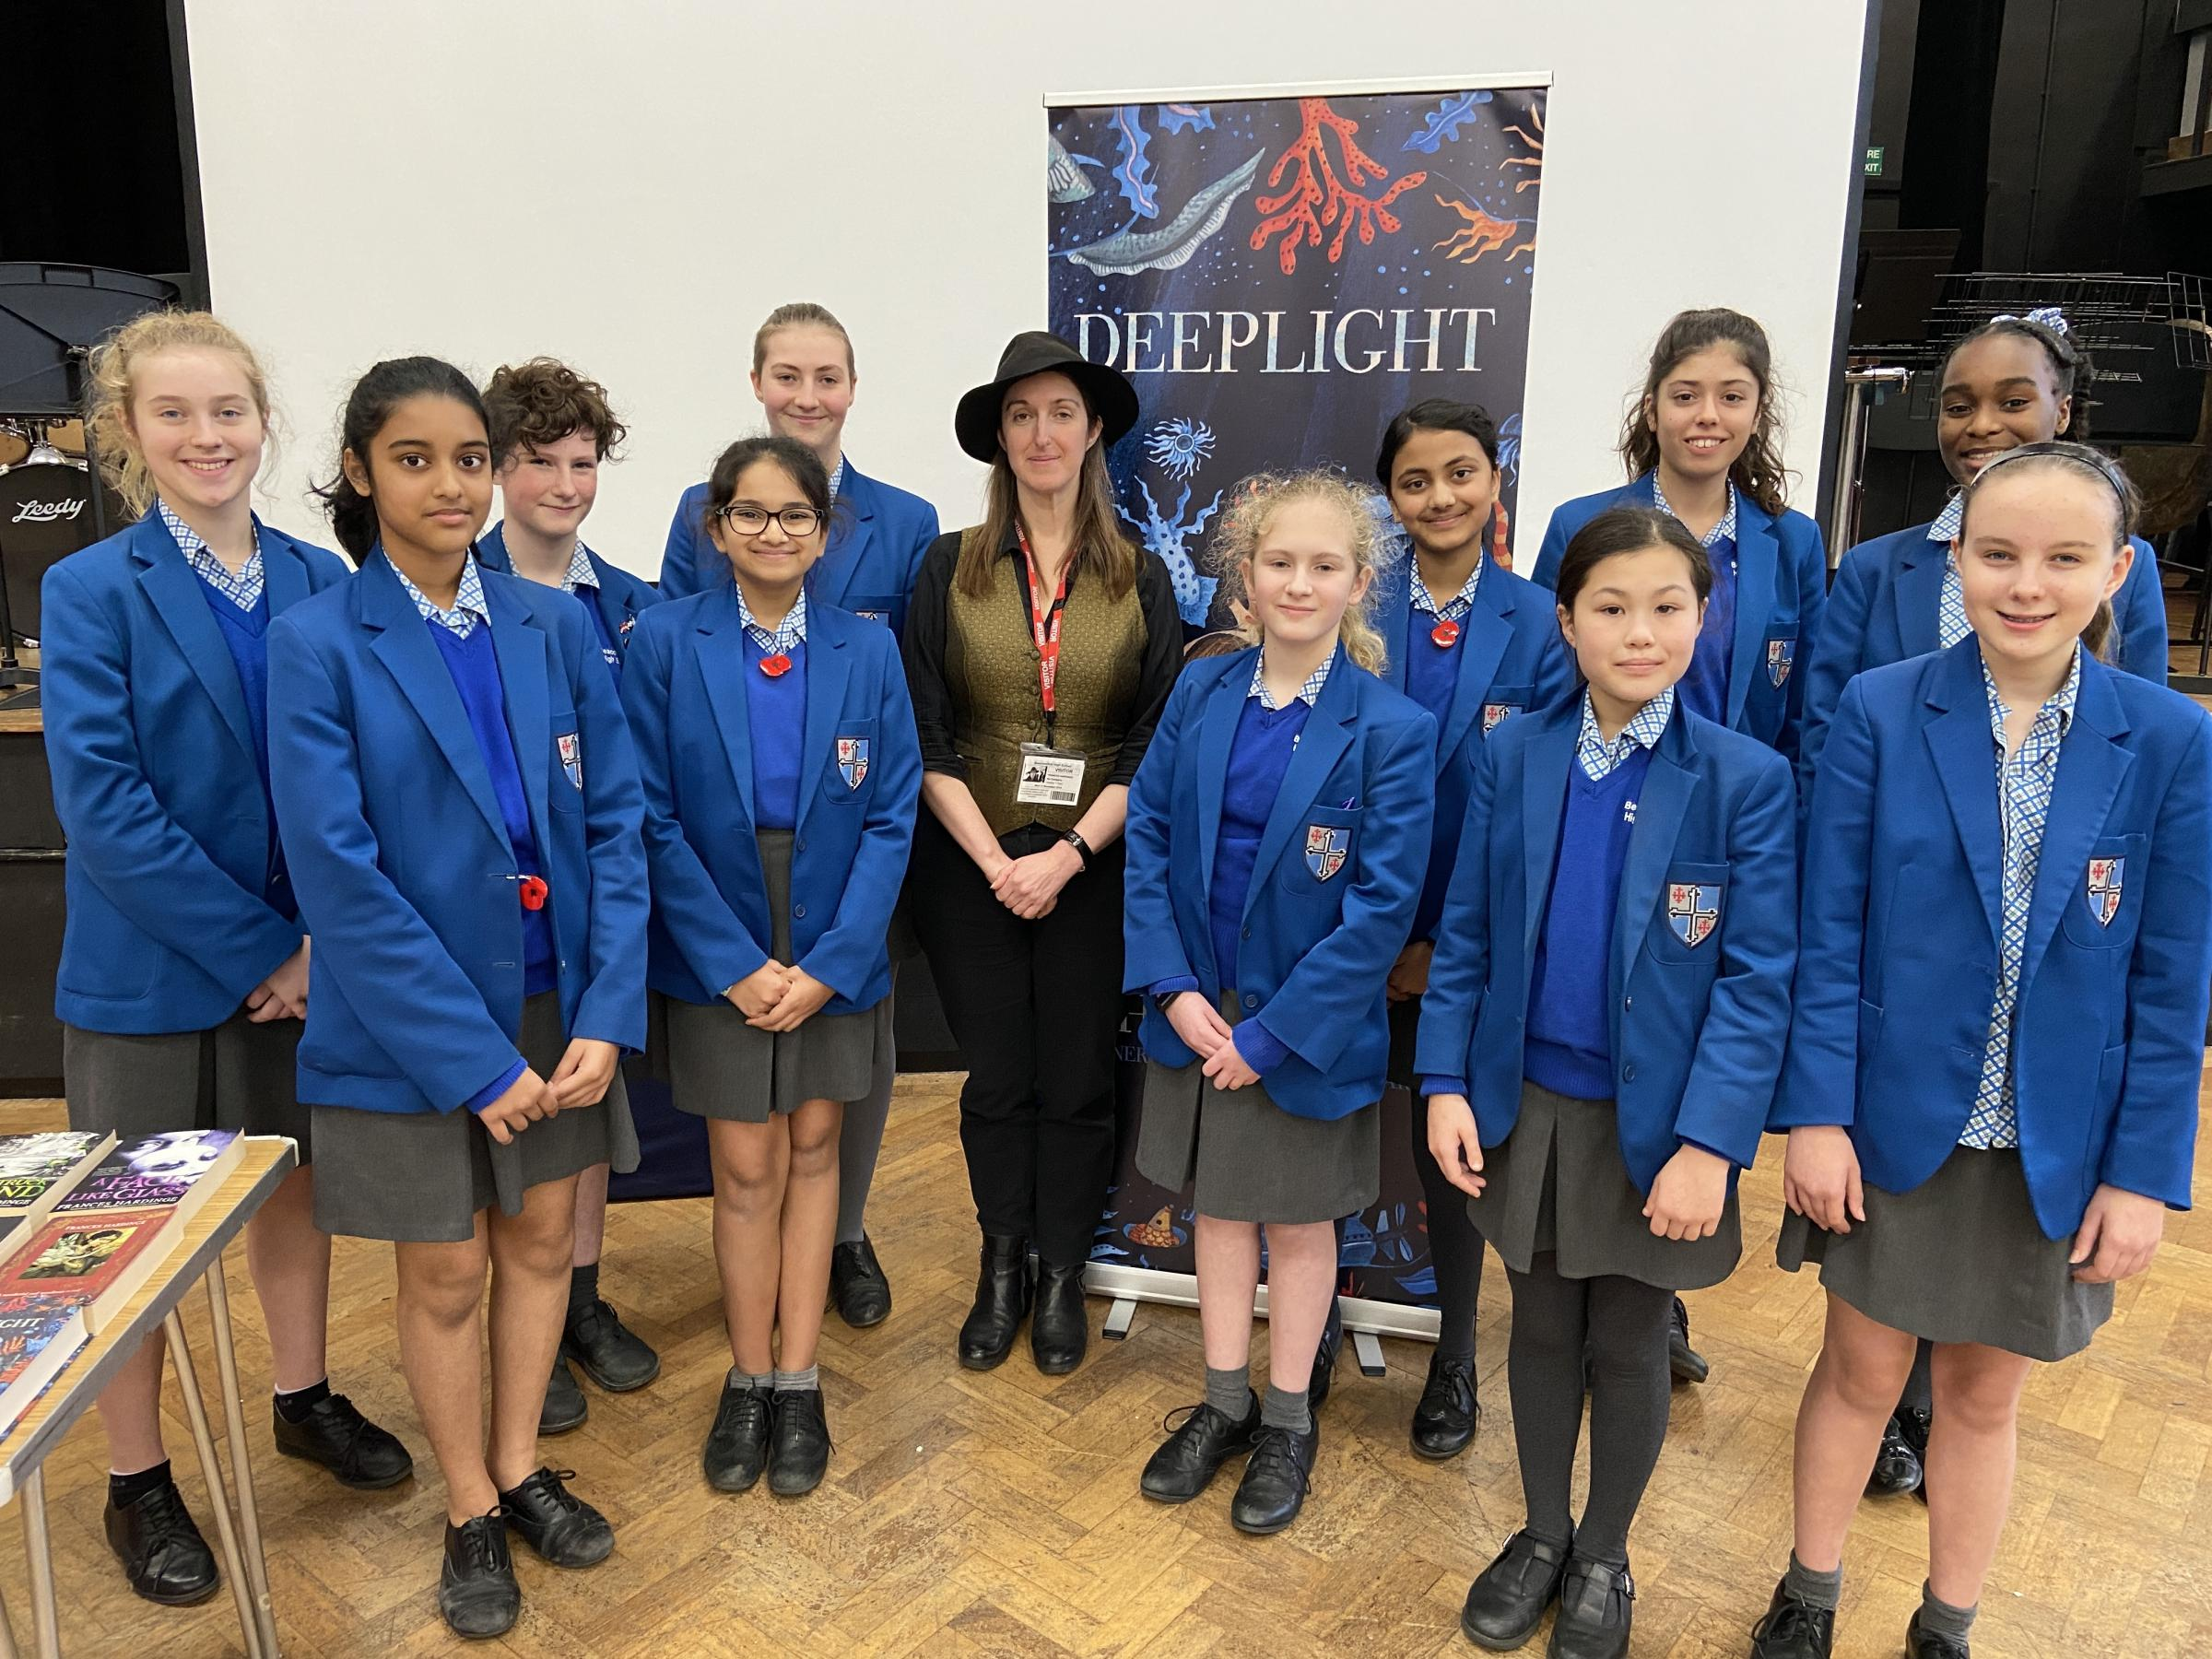 Renowned author visits pupils at Beaconsfield High School - Bucks Free Press